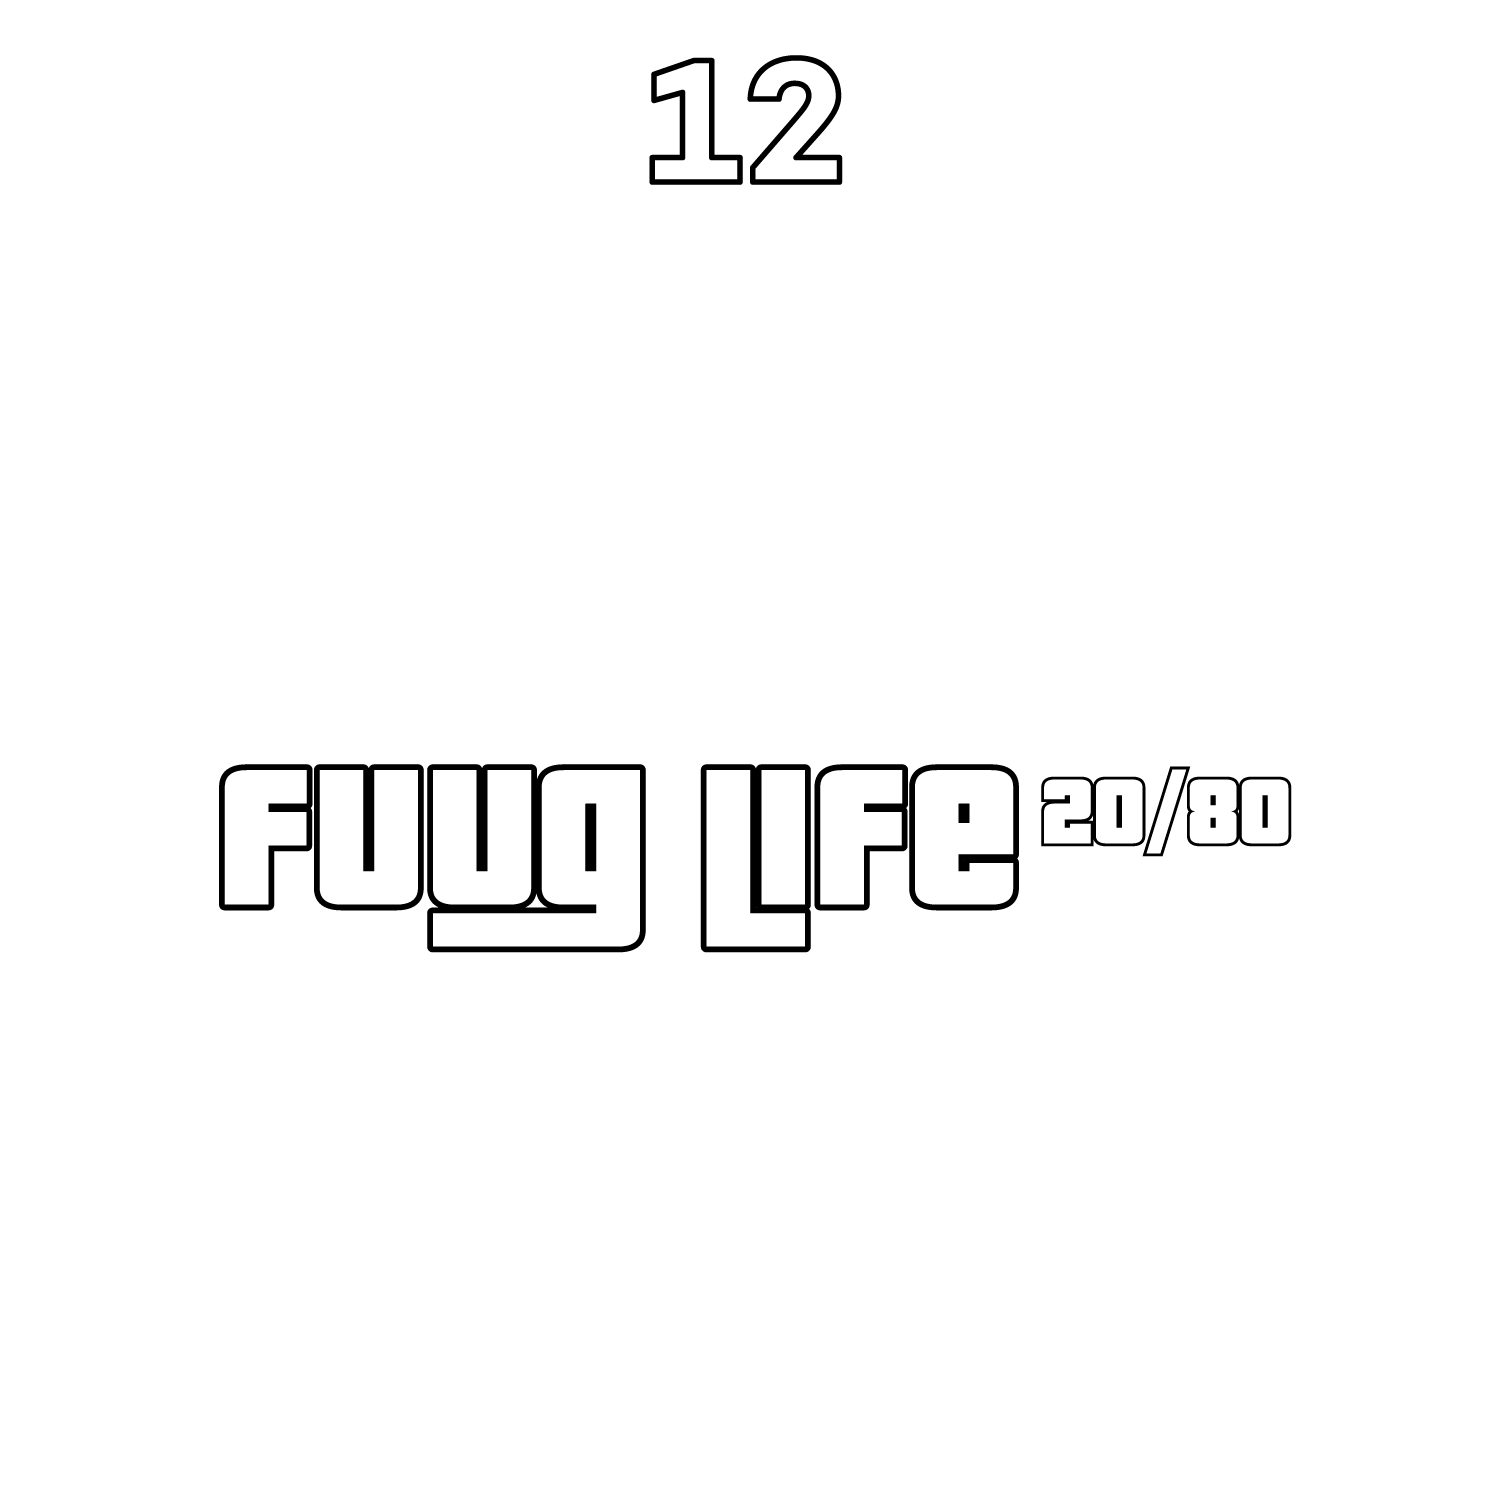 12-pack Fuuglife 20PG/80VG